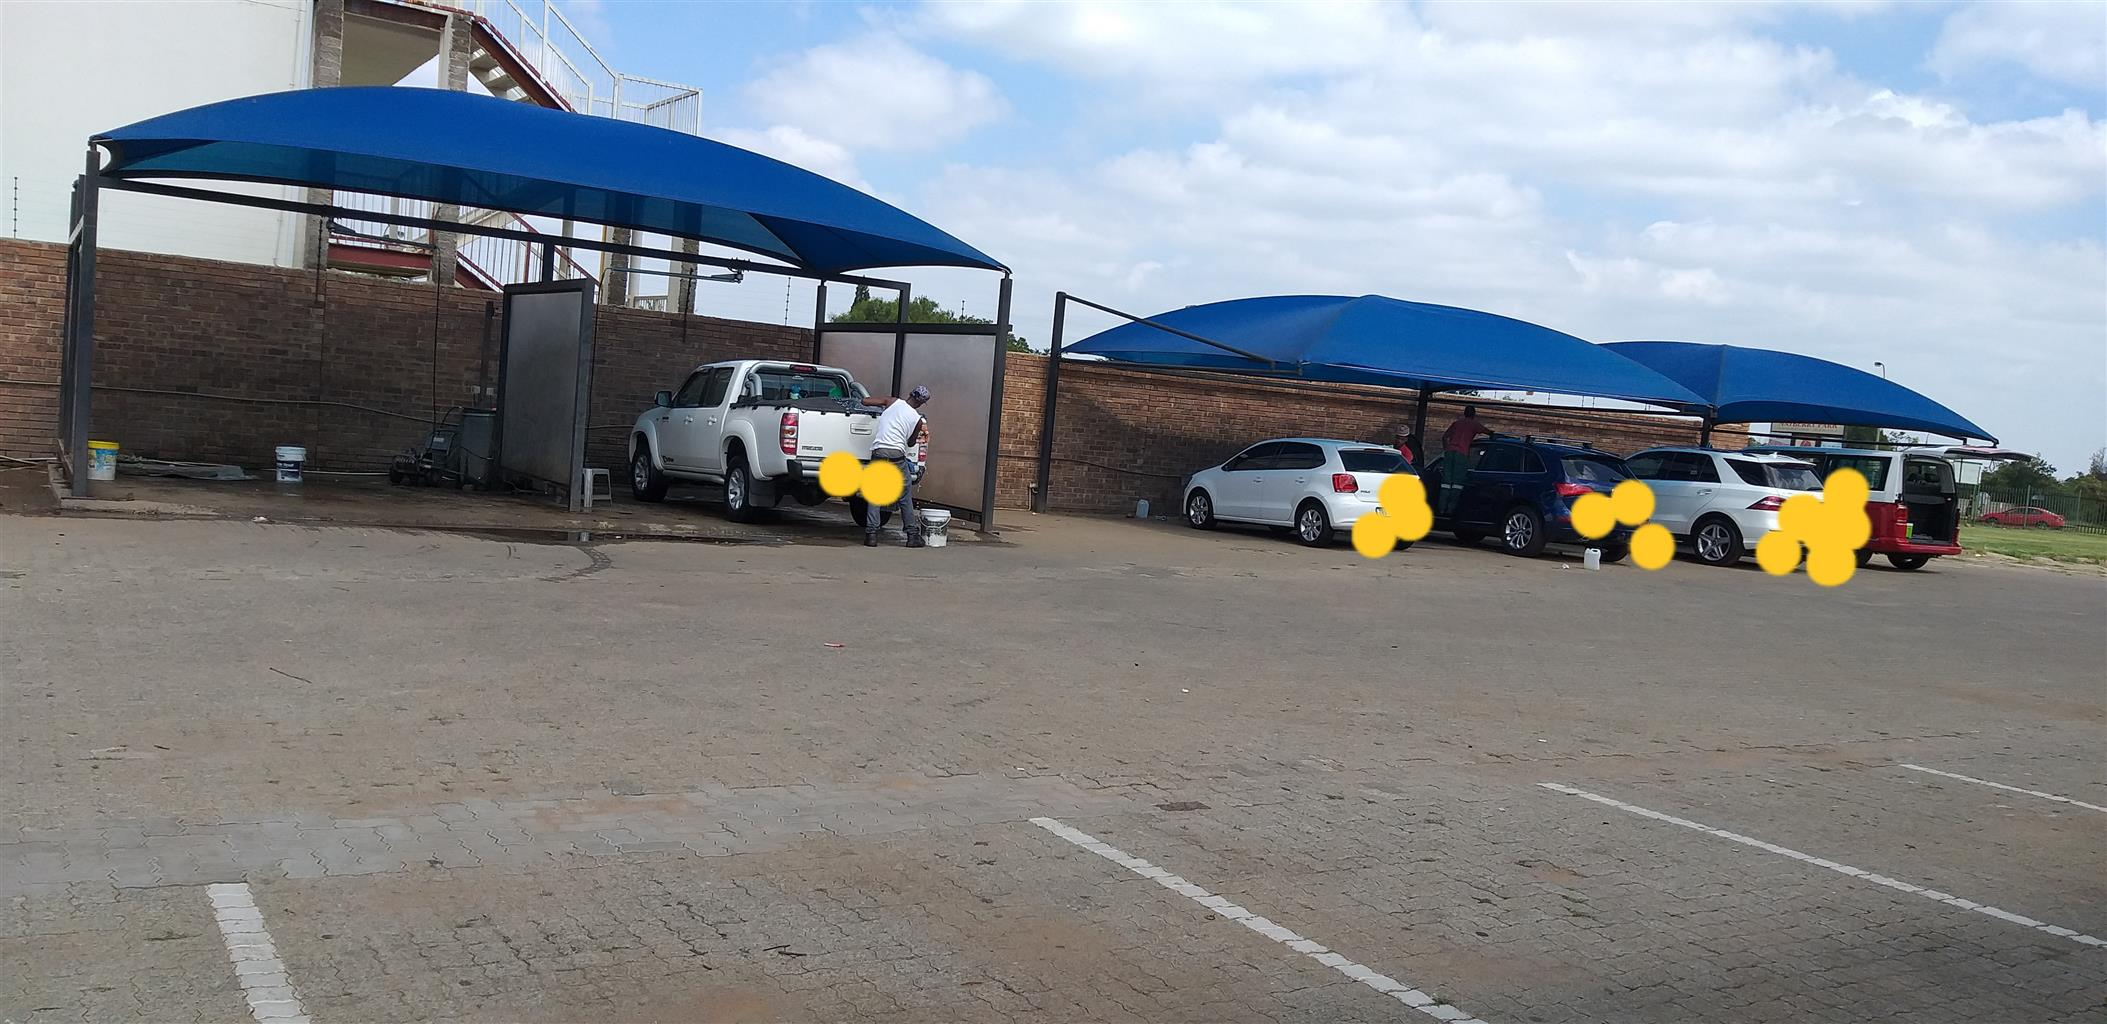 Car Wash and Laundry business for sale